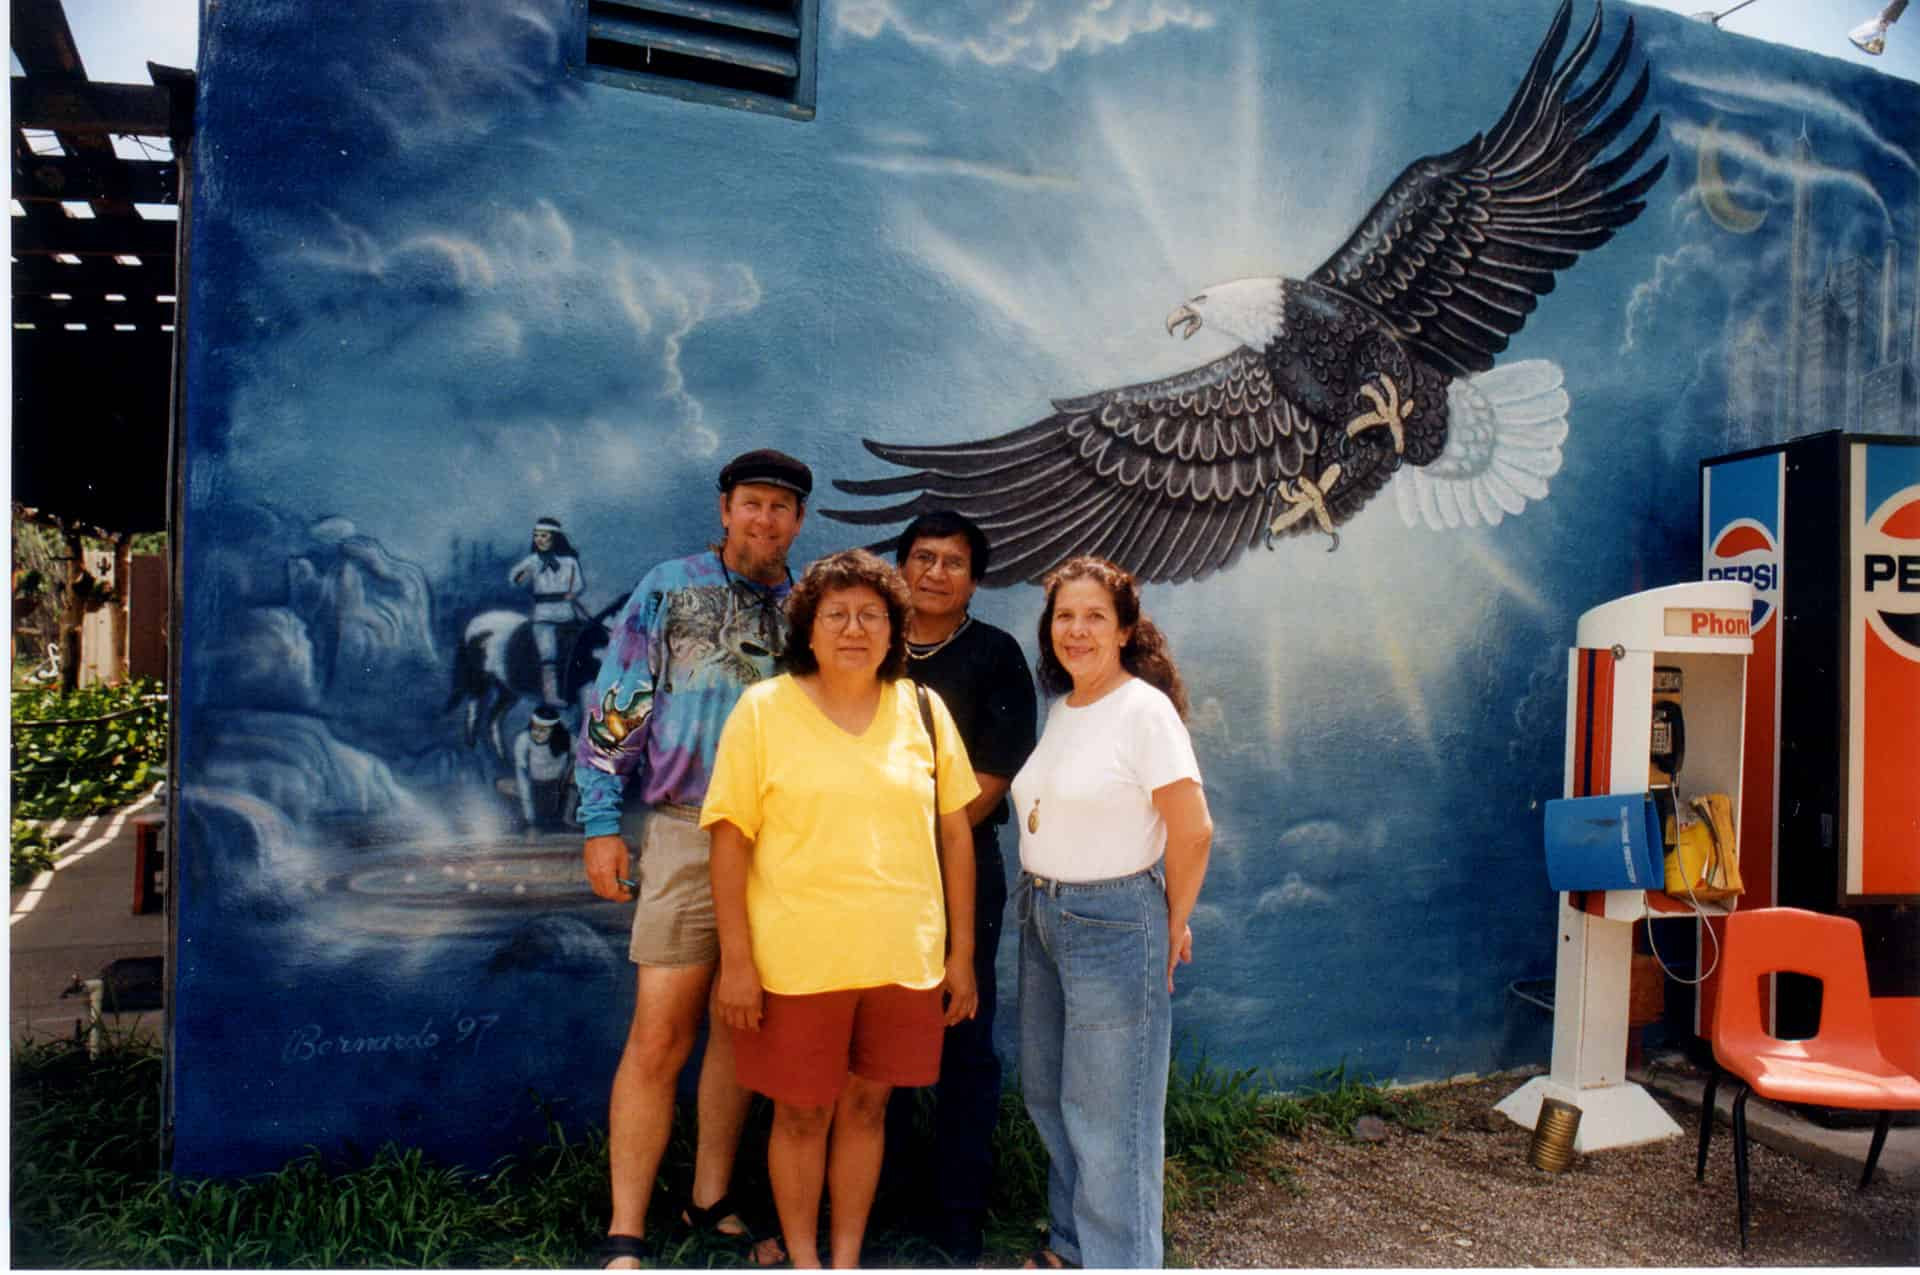 Harlyn Geronimo, his wife, and the Foerstners